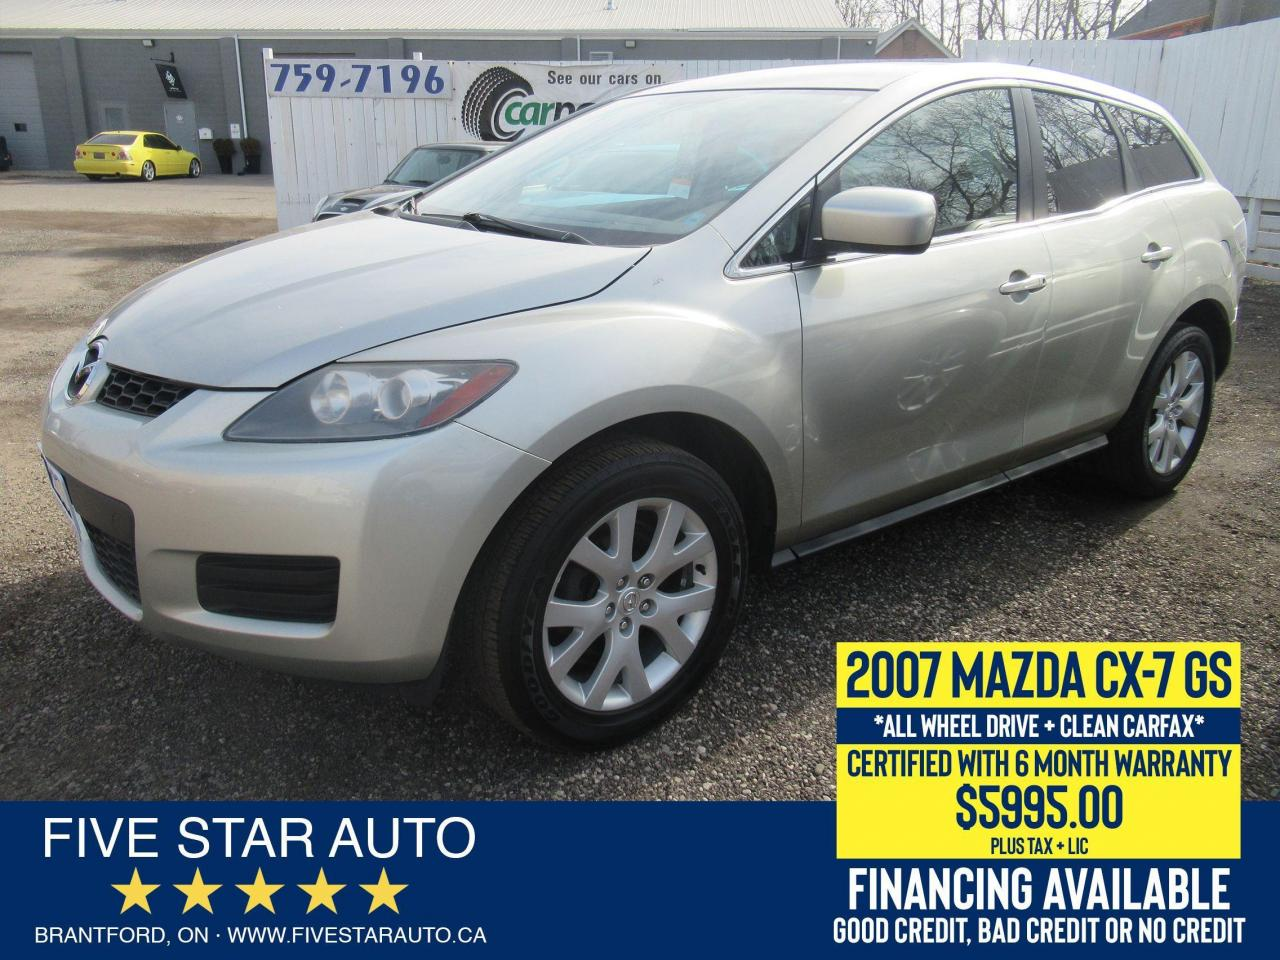 2007 Mazda CX-7 GS AWD *Clean Carfax* Certified + 6 Month Warranty